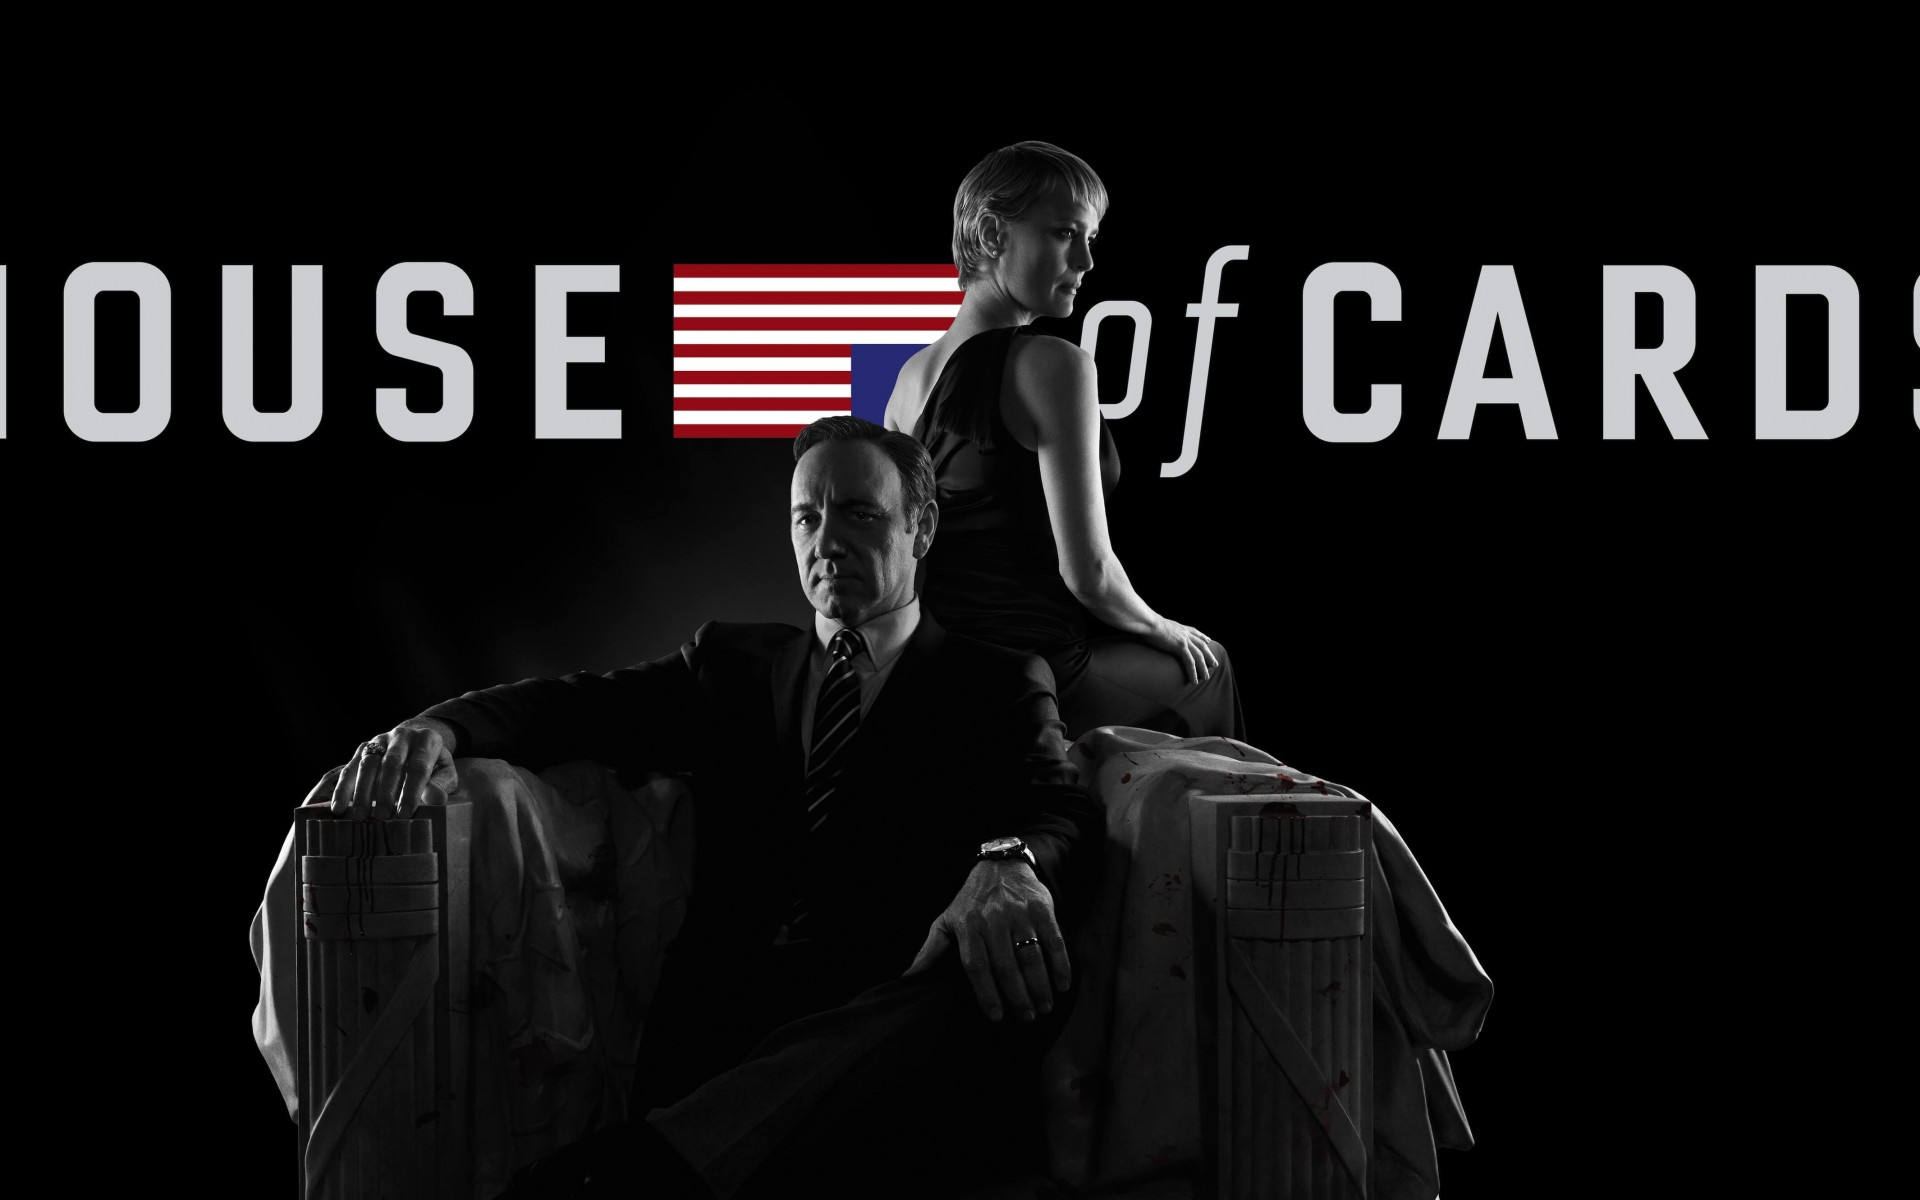 House of Cards - Black & White Wallpaper for Desktop 1920x1200